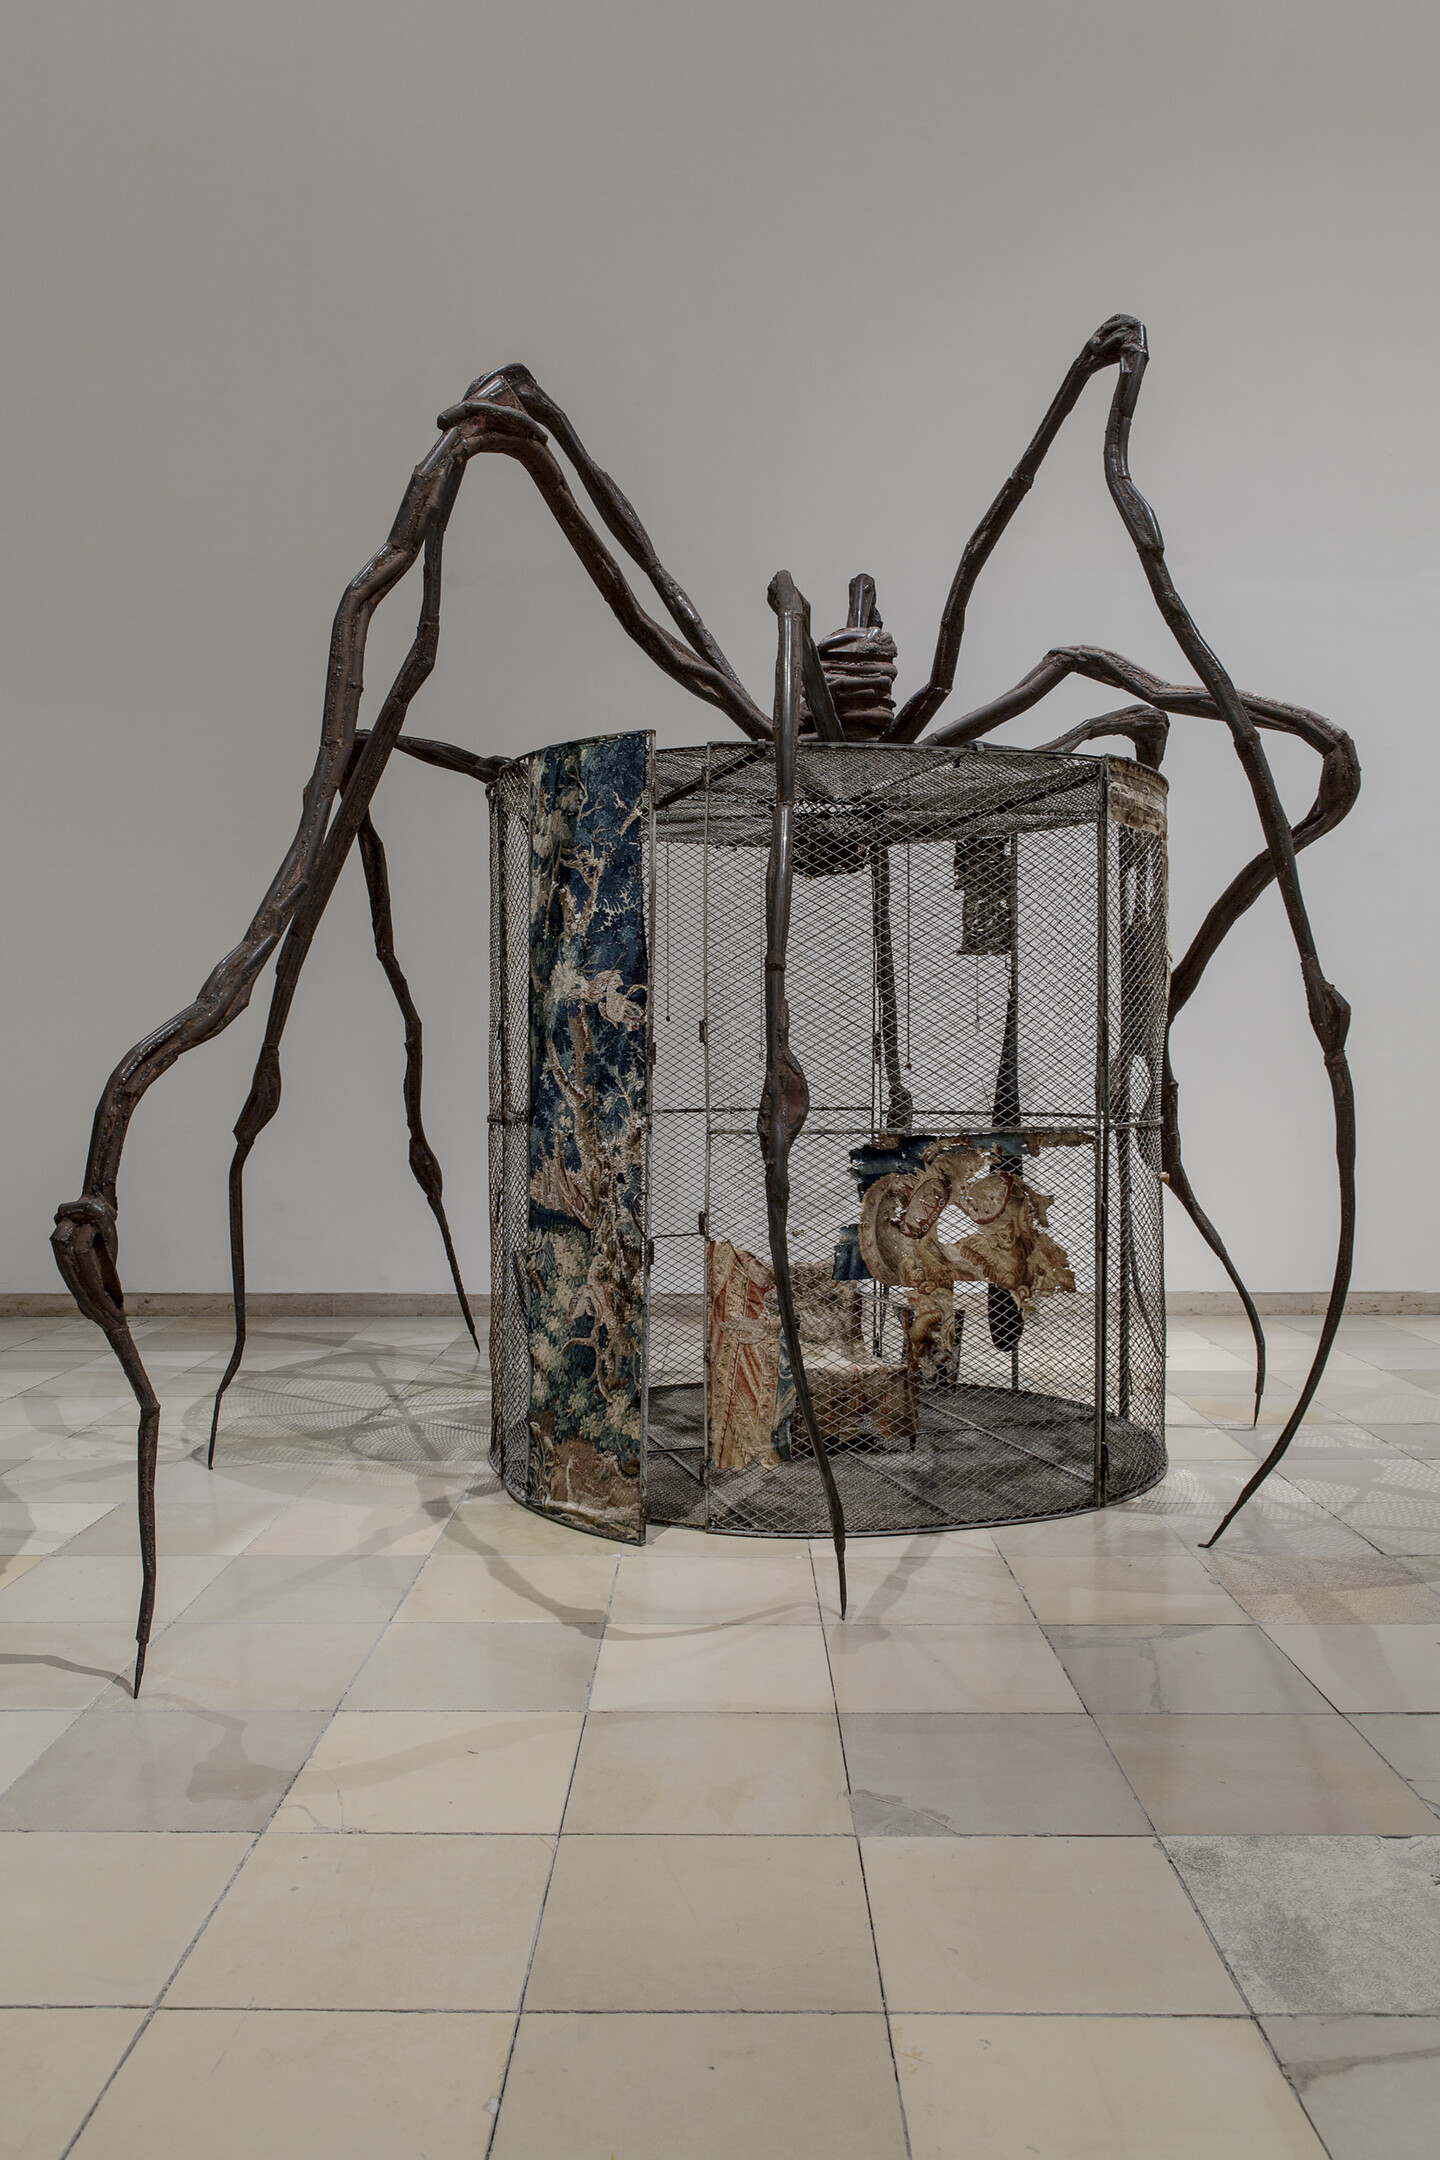 The easton foundation vaga at ars ny photo maximilian geuter louise bourgeois